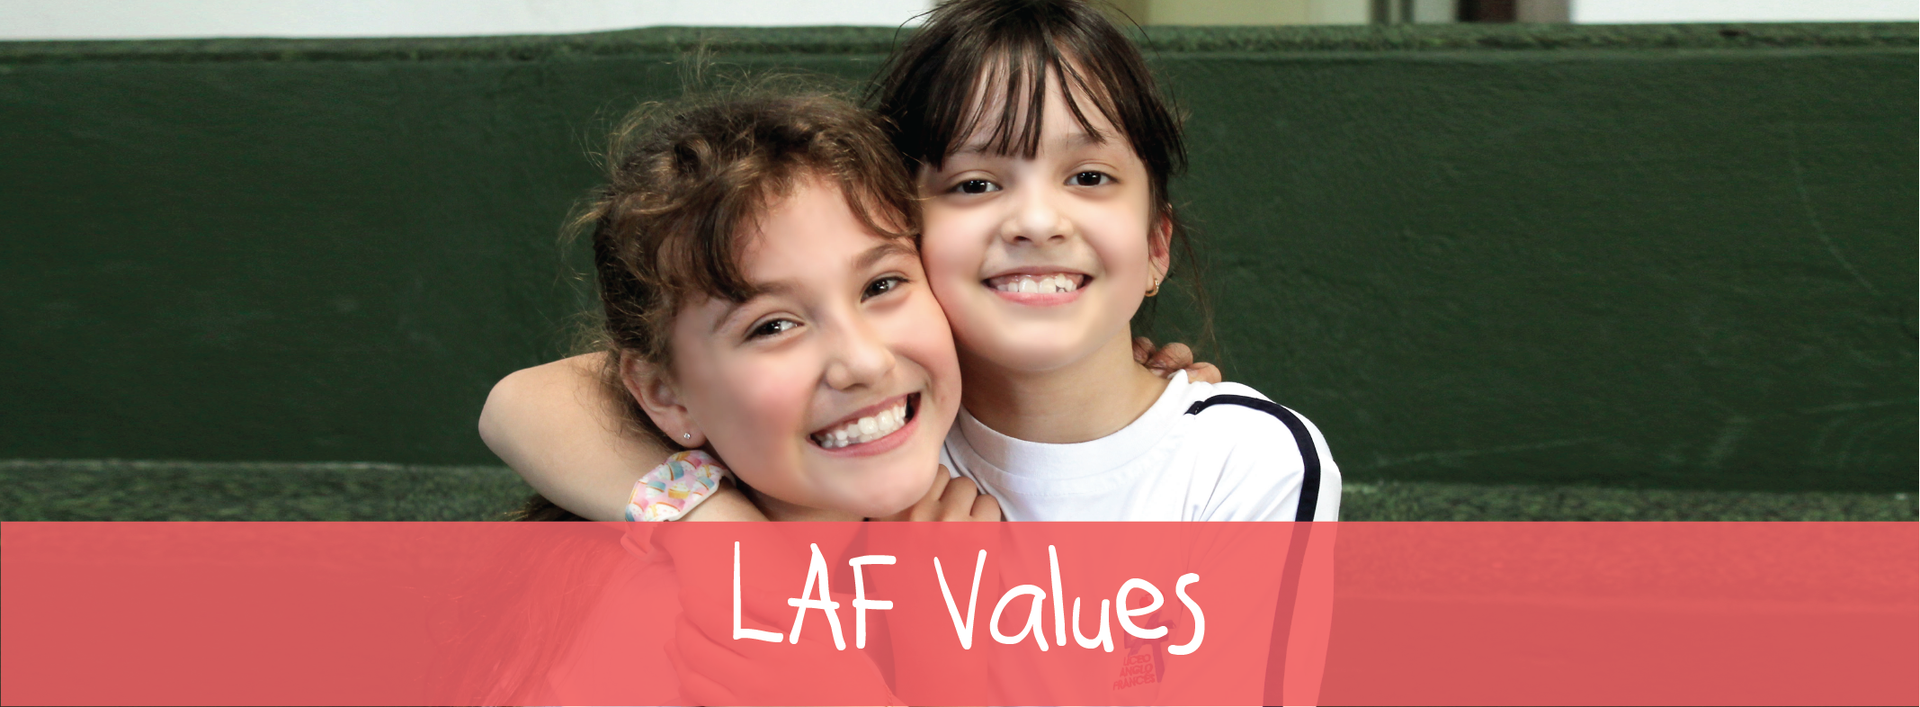 LAF Values